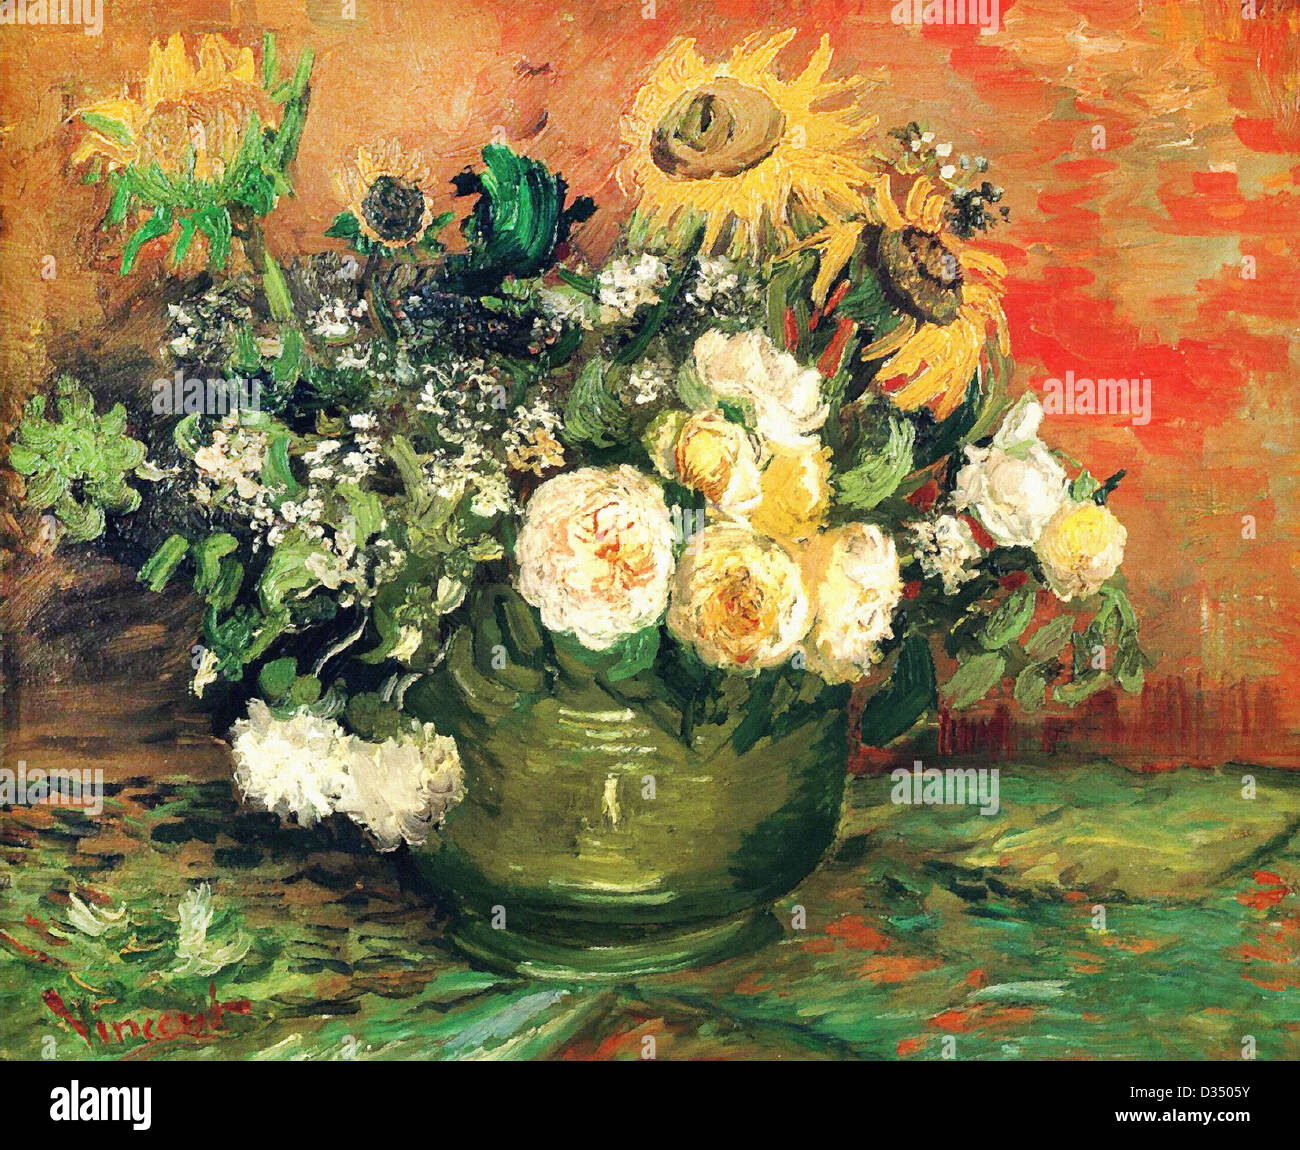 vincent van gogh still life with roses and sunflowers 1886 stock photo royalty free image. Black Bedroom Furniture Sets. Home Design Ideas